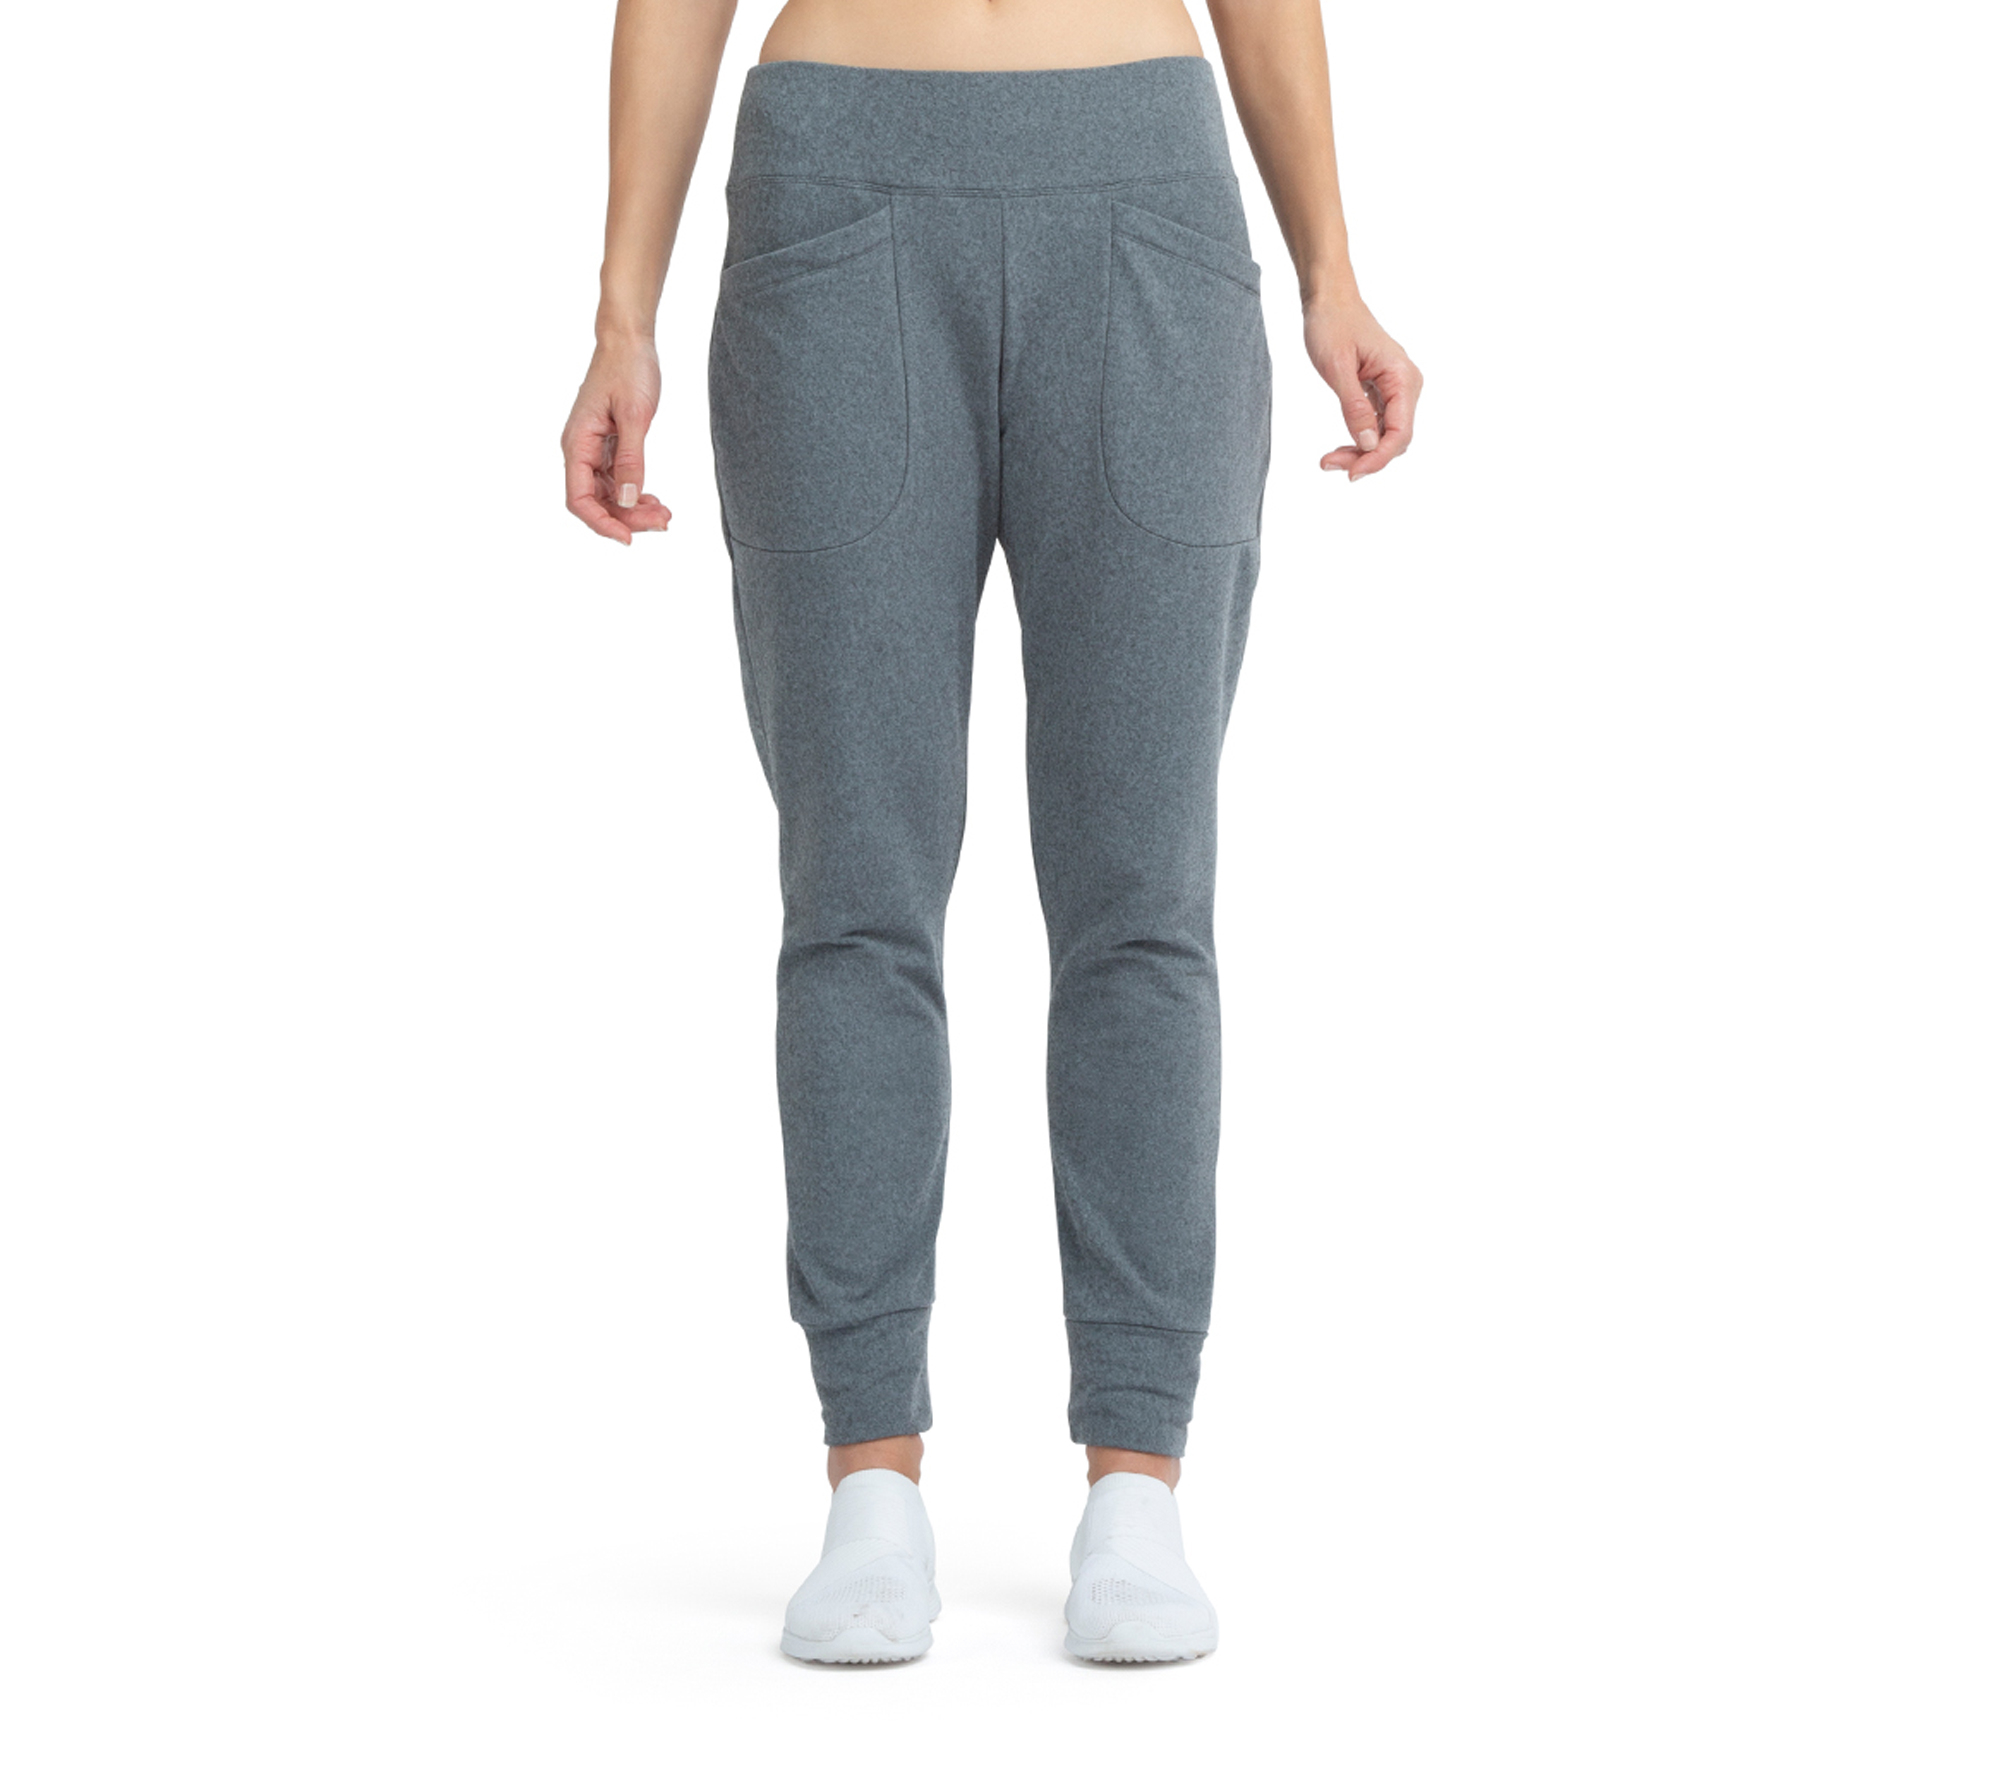 Power-stretch technical pants